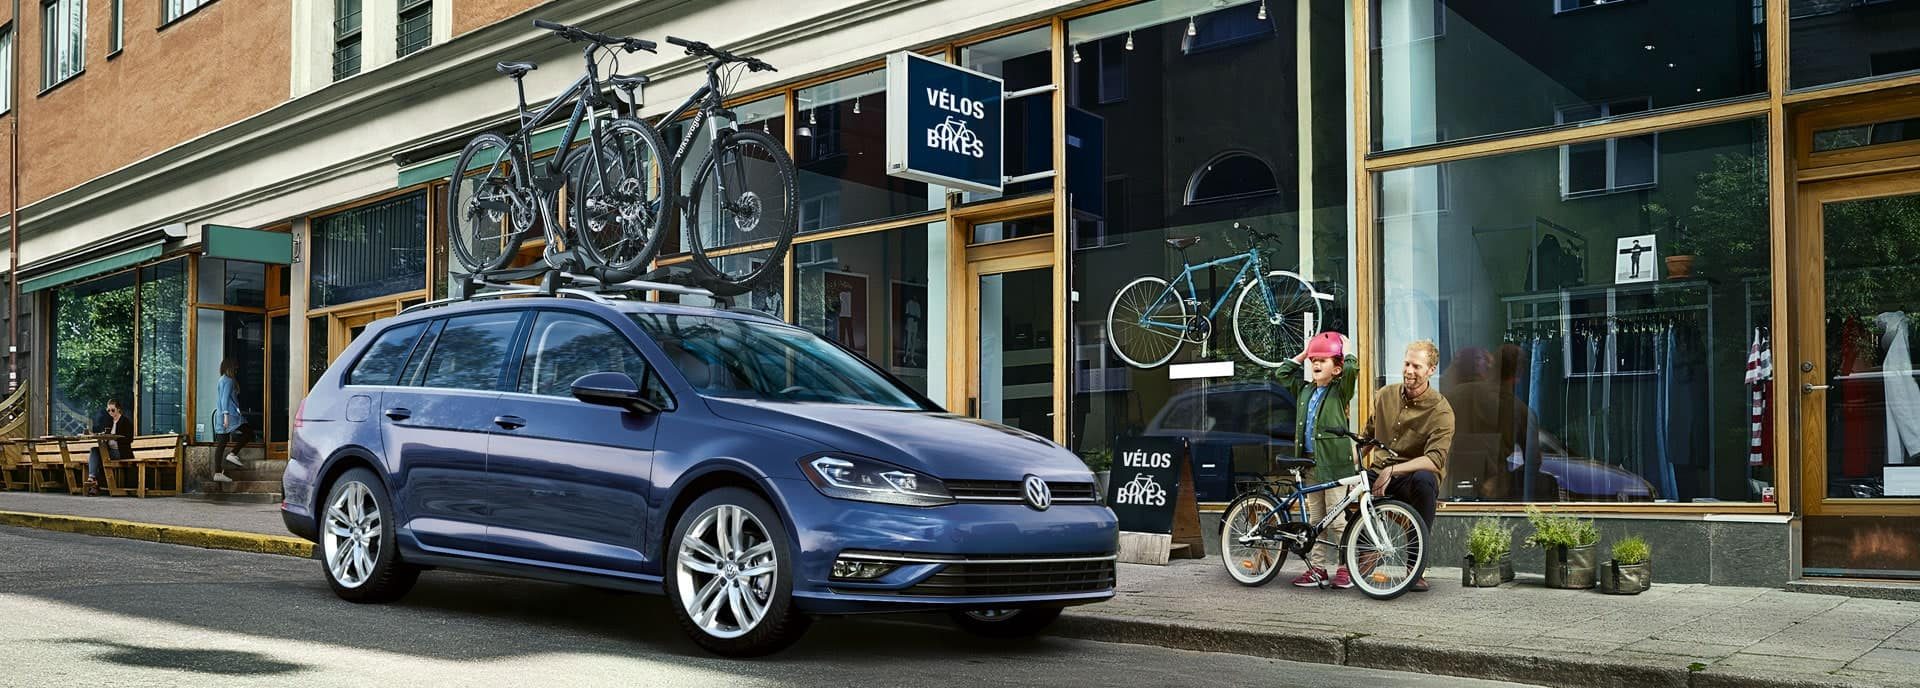 Blue 2019 Golf SportWagen at the bike shop. A little girl with a pink bicycle helmet is overjoyed. A man, presumably her father, seems happy but restrained.